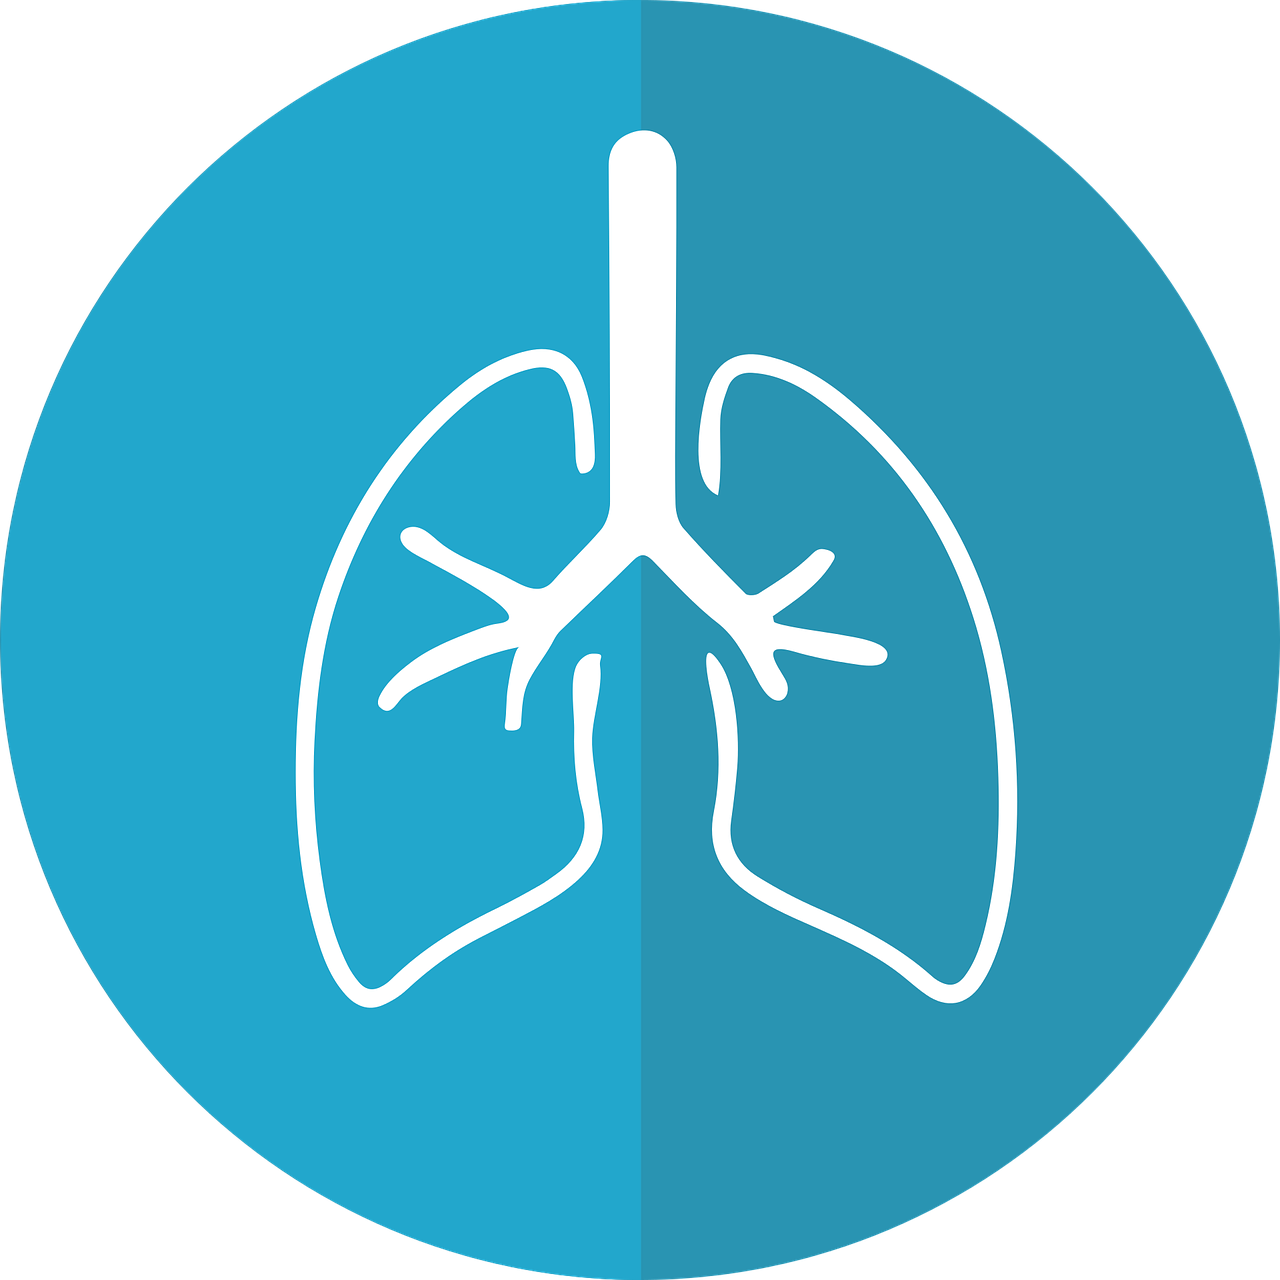 lungs-2803208_1280